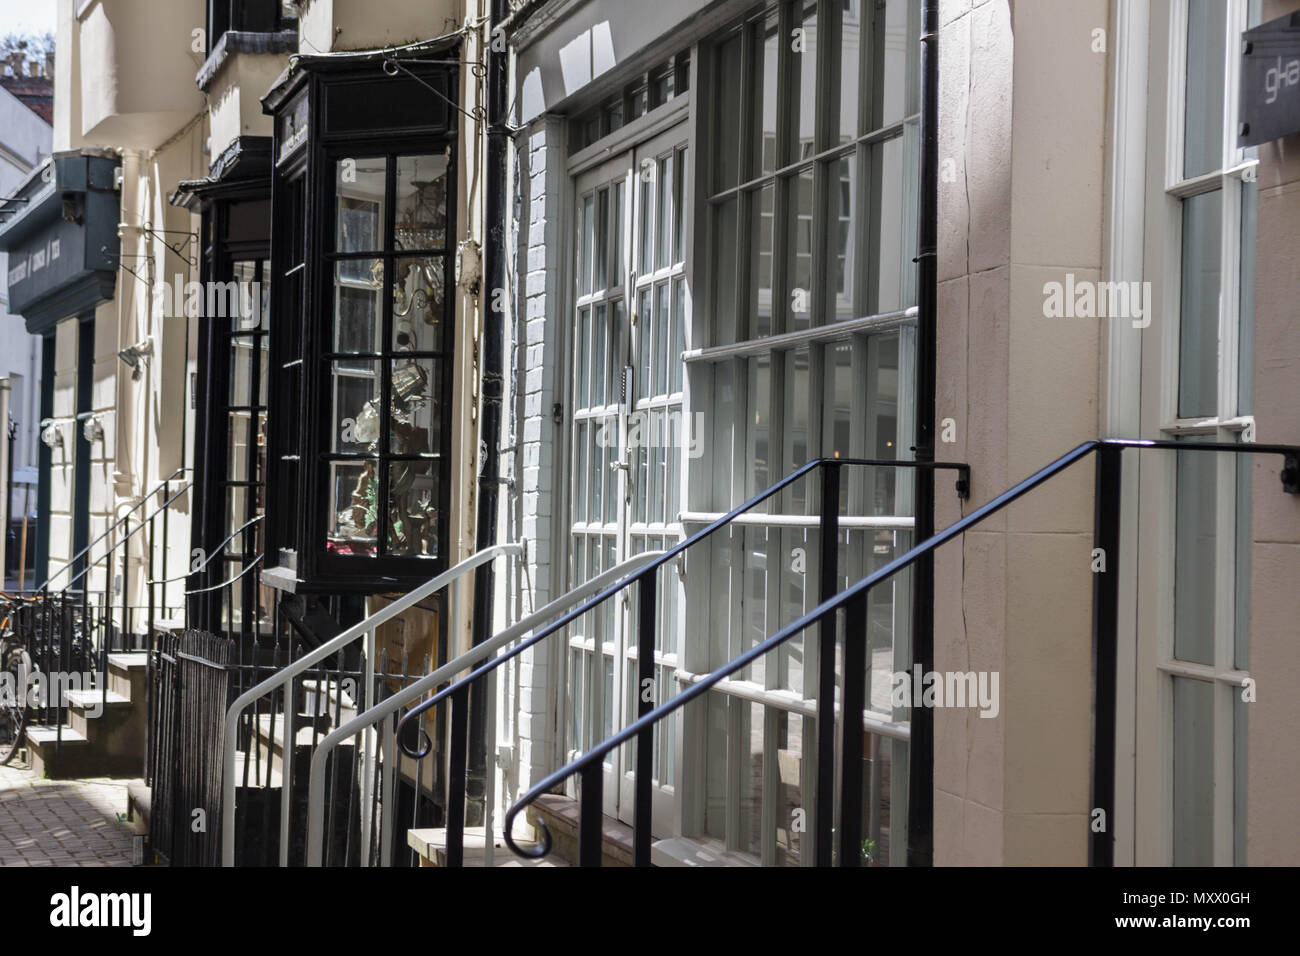 Street scene in a regency town in the UK. Image showing buildings, walls, shops, plants. Urban image. - Stock Image